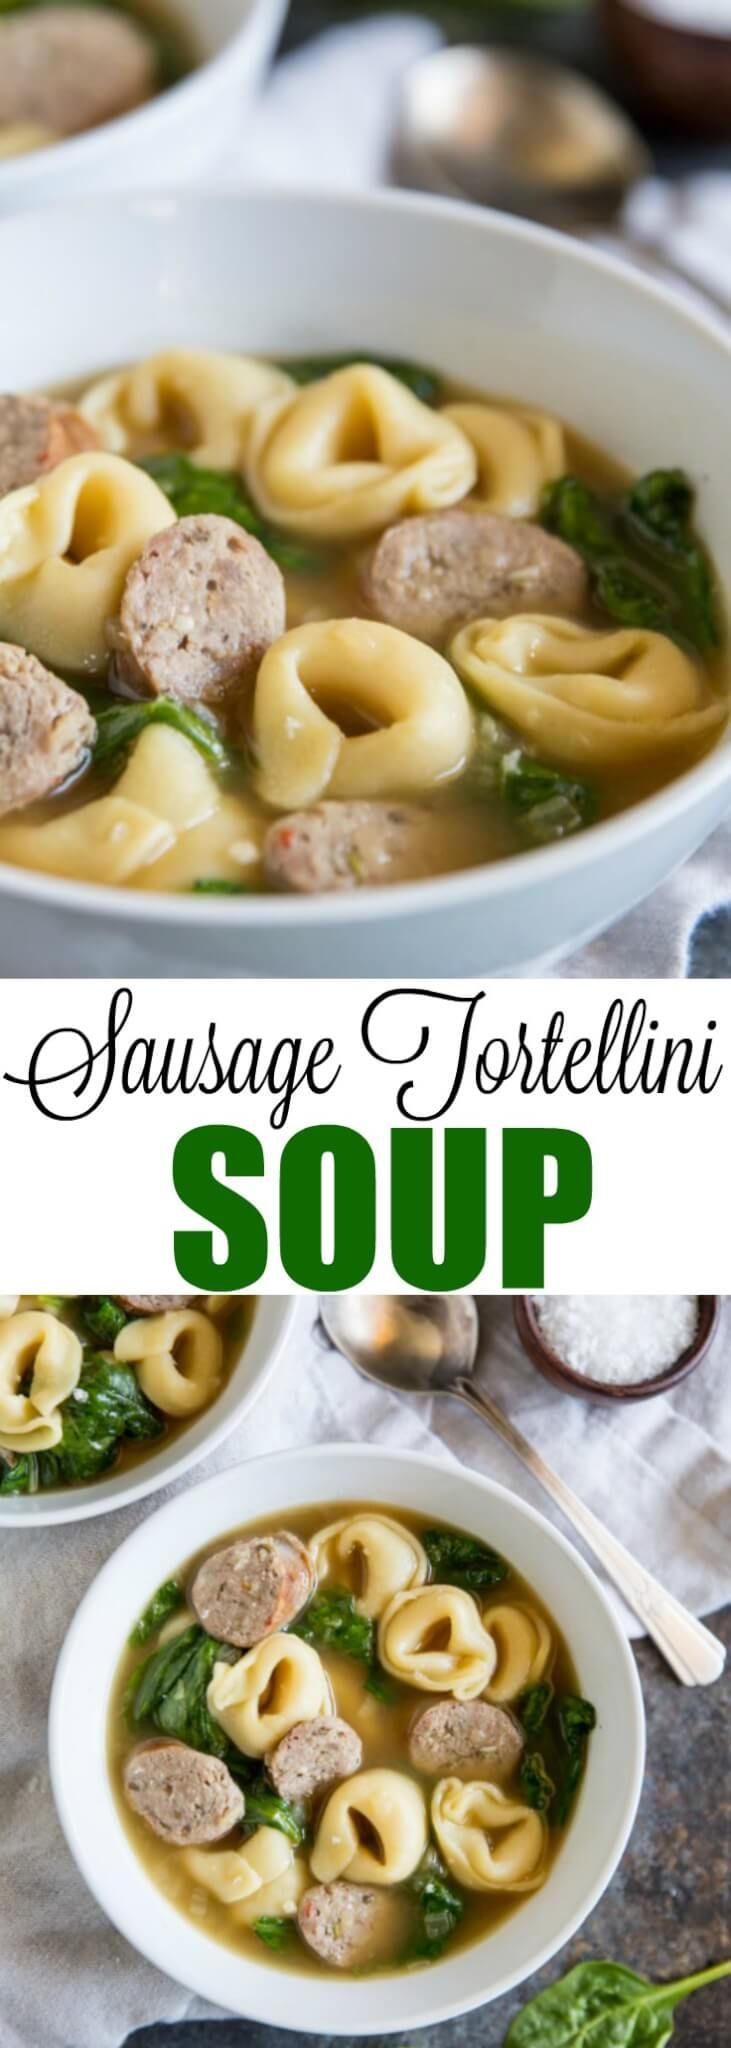 A quick and easy dinner made with frozen cheese tortellini and Italian sausage! Lots of great flavors in this recipe and it's ready in 30 minutes or less. via @culinaryhill